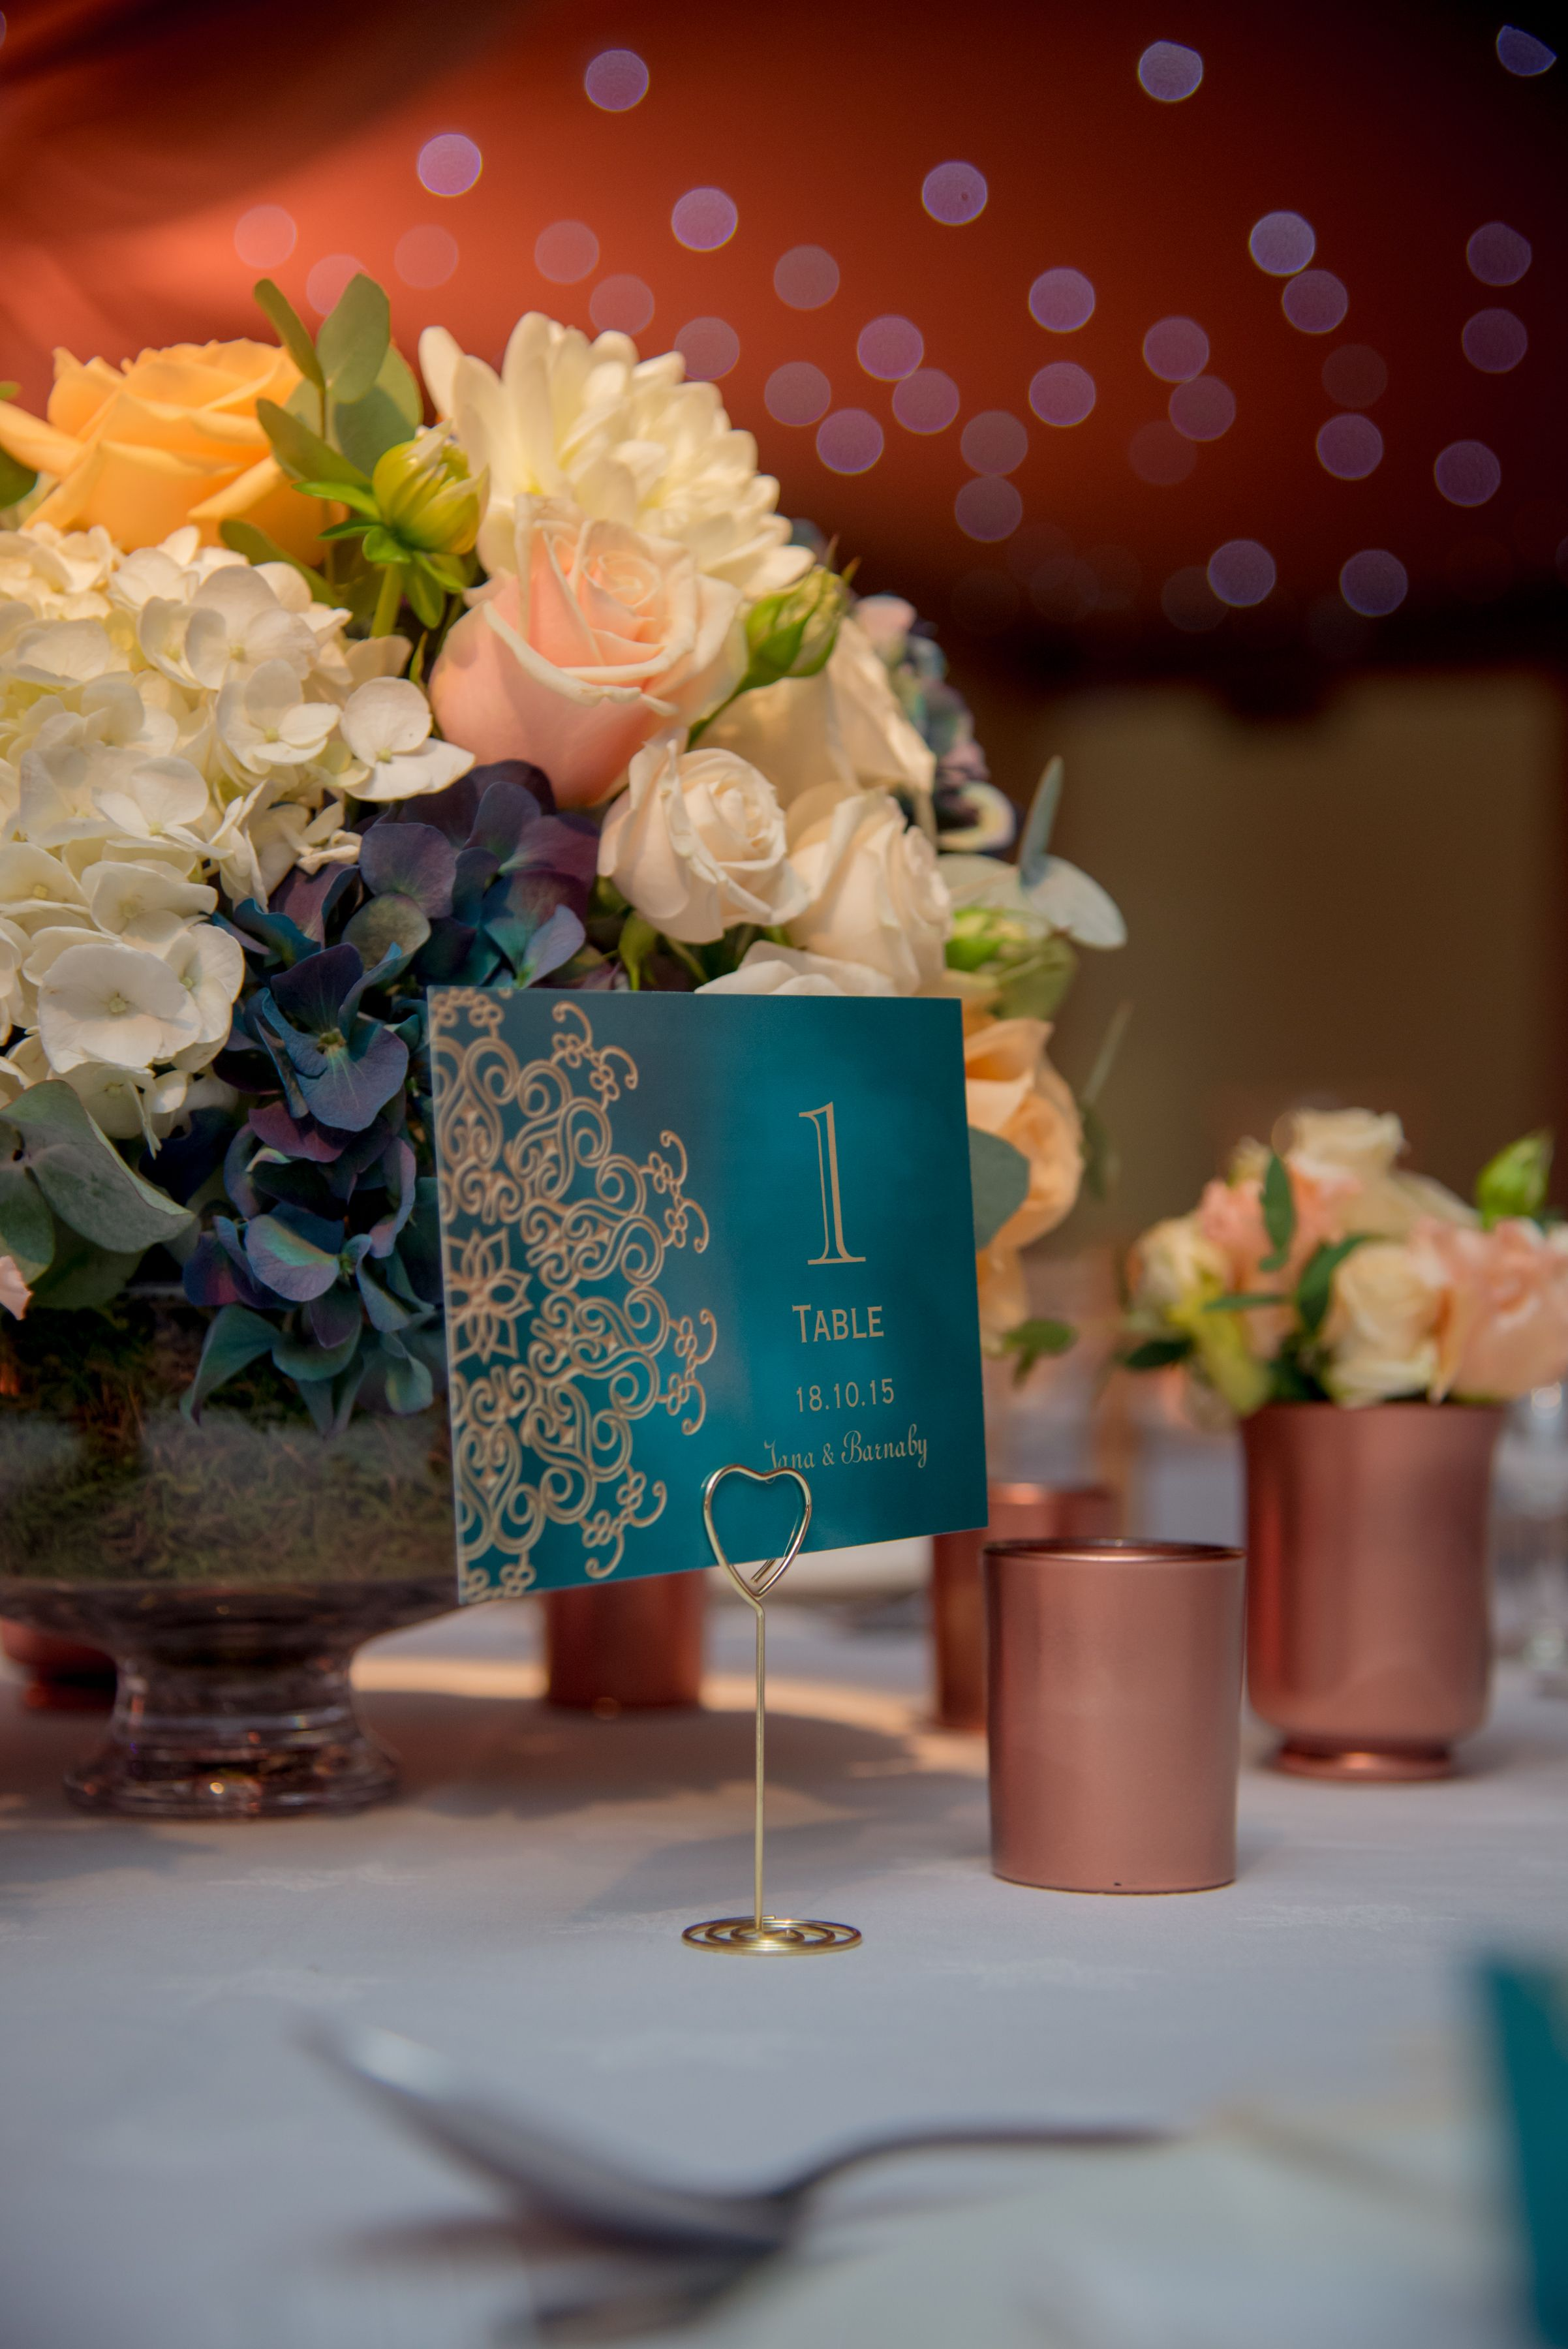 Teal Peach Ivory And Copper Wedding Centrepiece Surrey Flowers By Boutique Blooms Floral Design